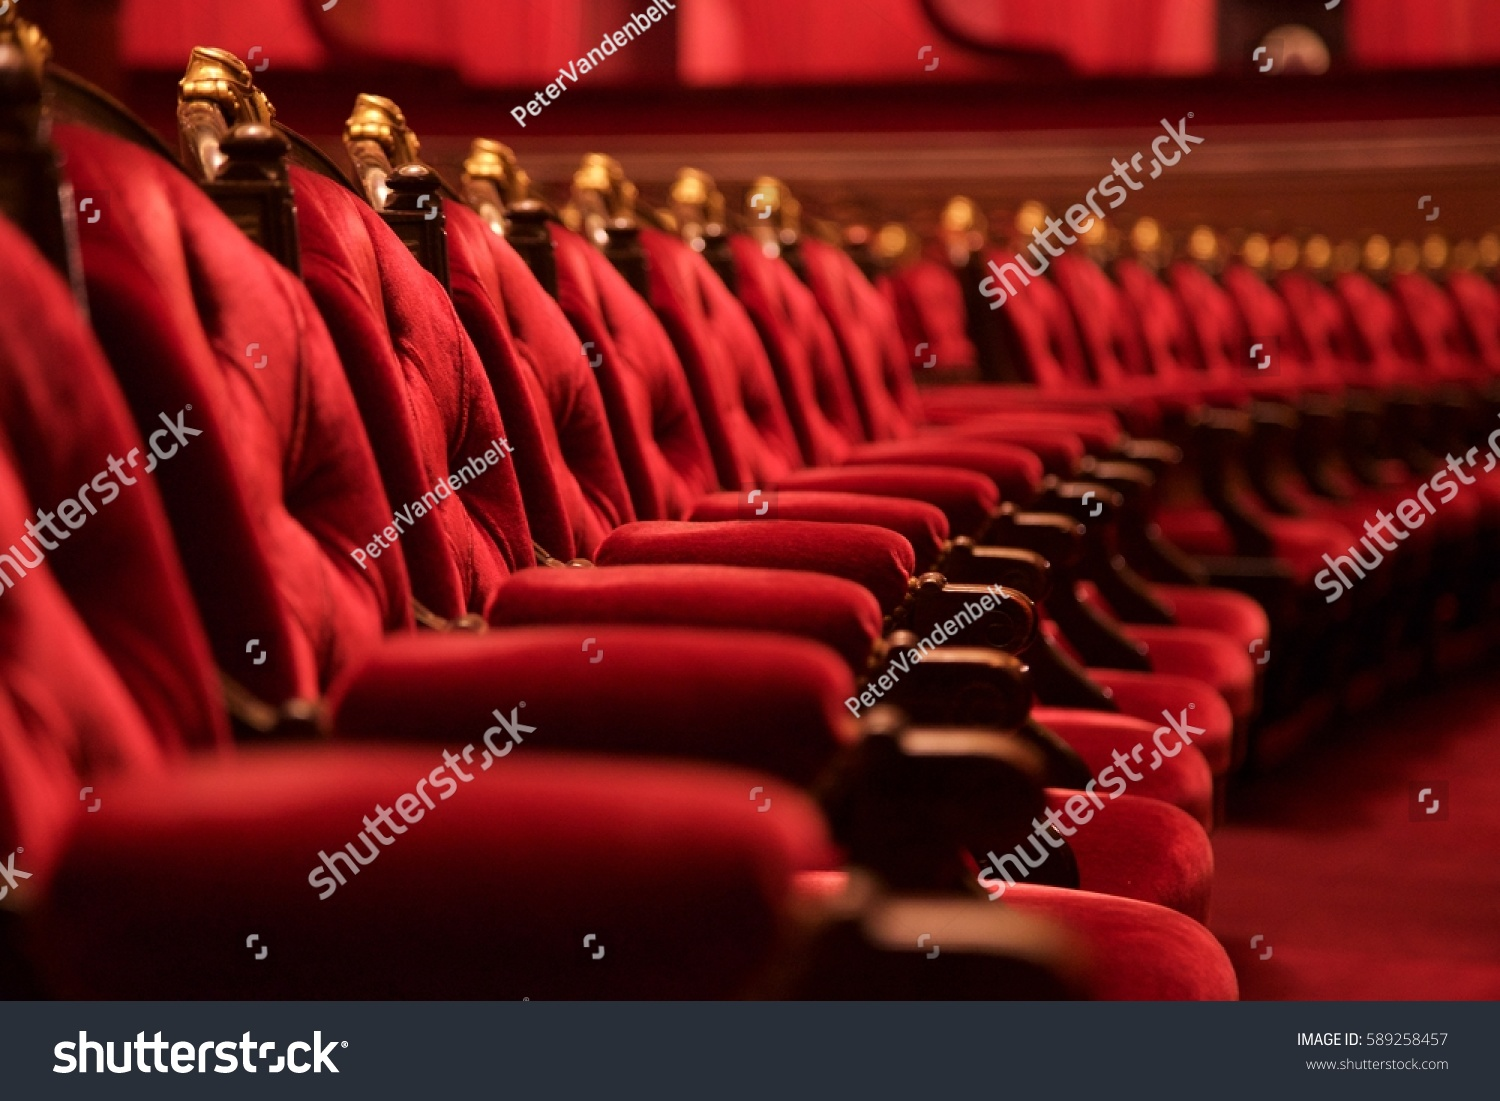 Traditional classically regal ornate rounded wood armed formal plush deep red velvet opera movie theater chairs in curved row with decorative gold molding in fancy carpeted venue #589258457